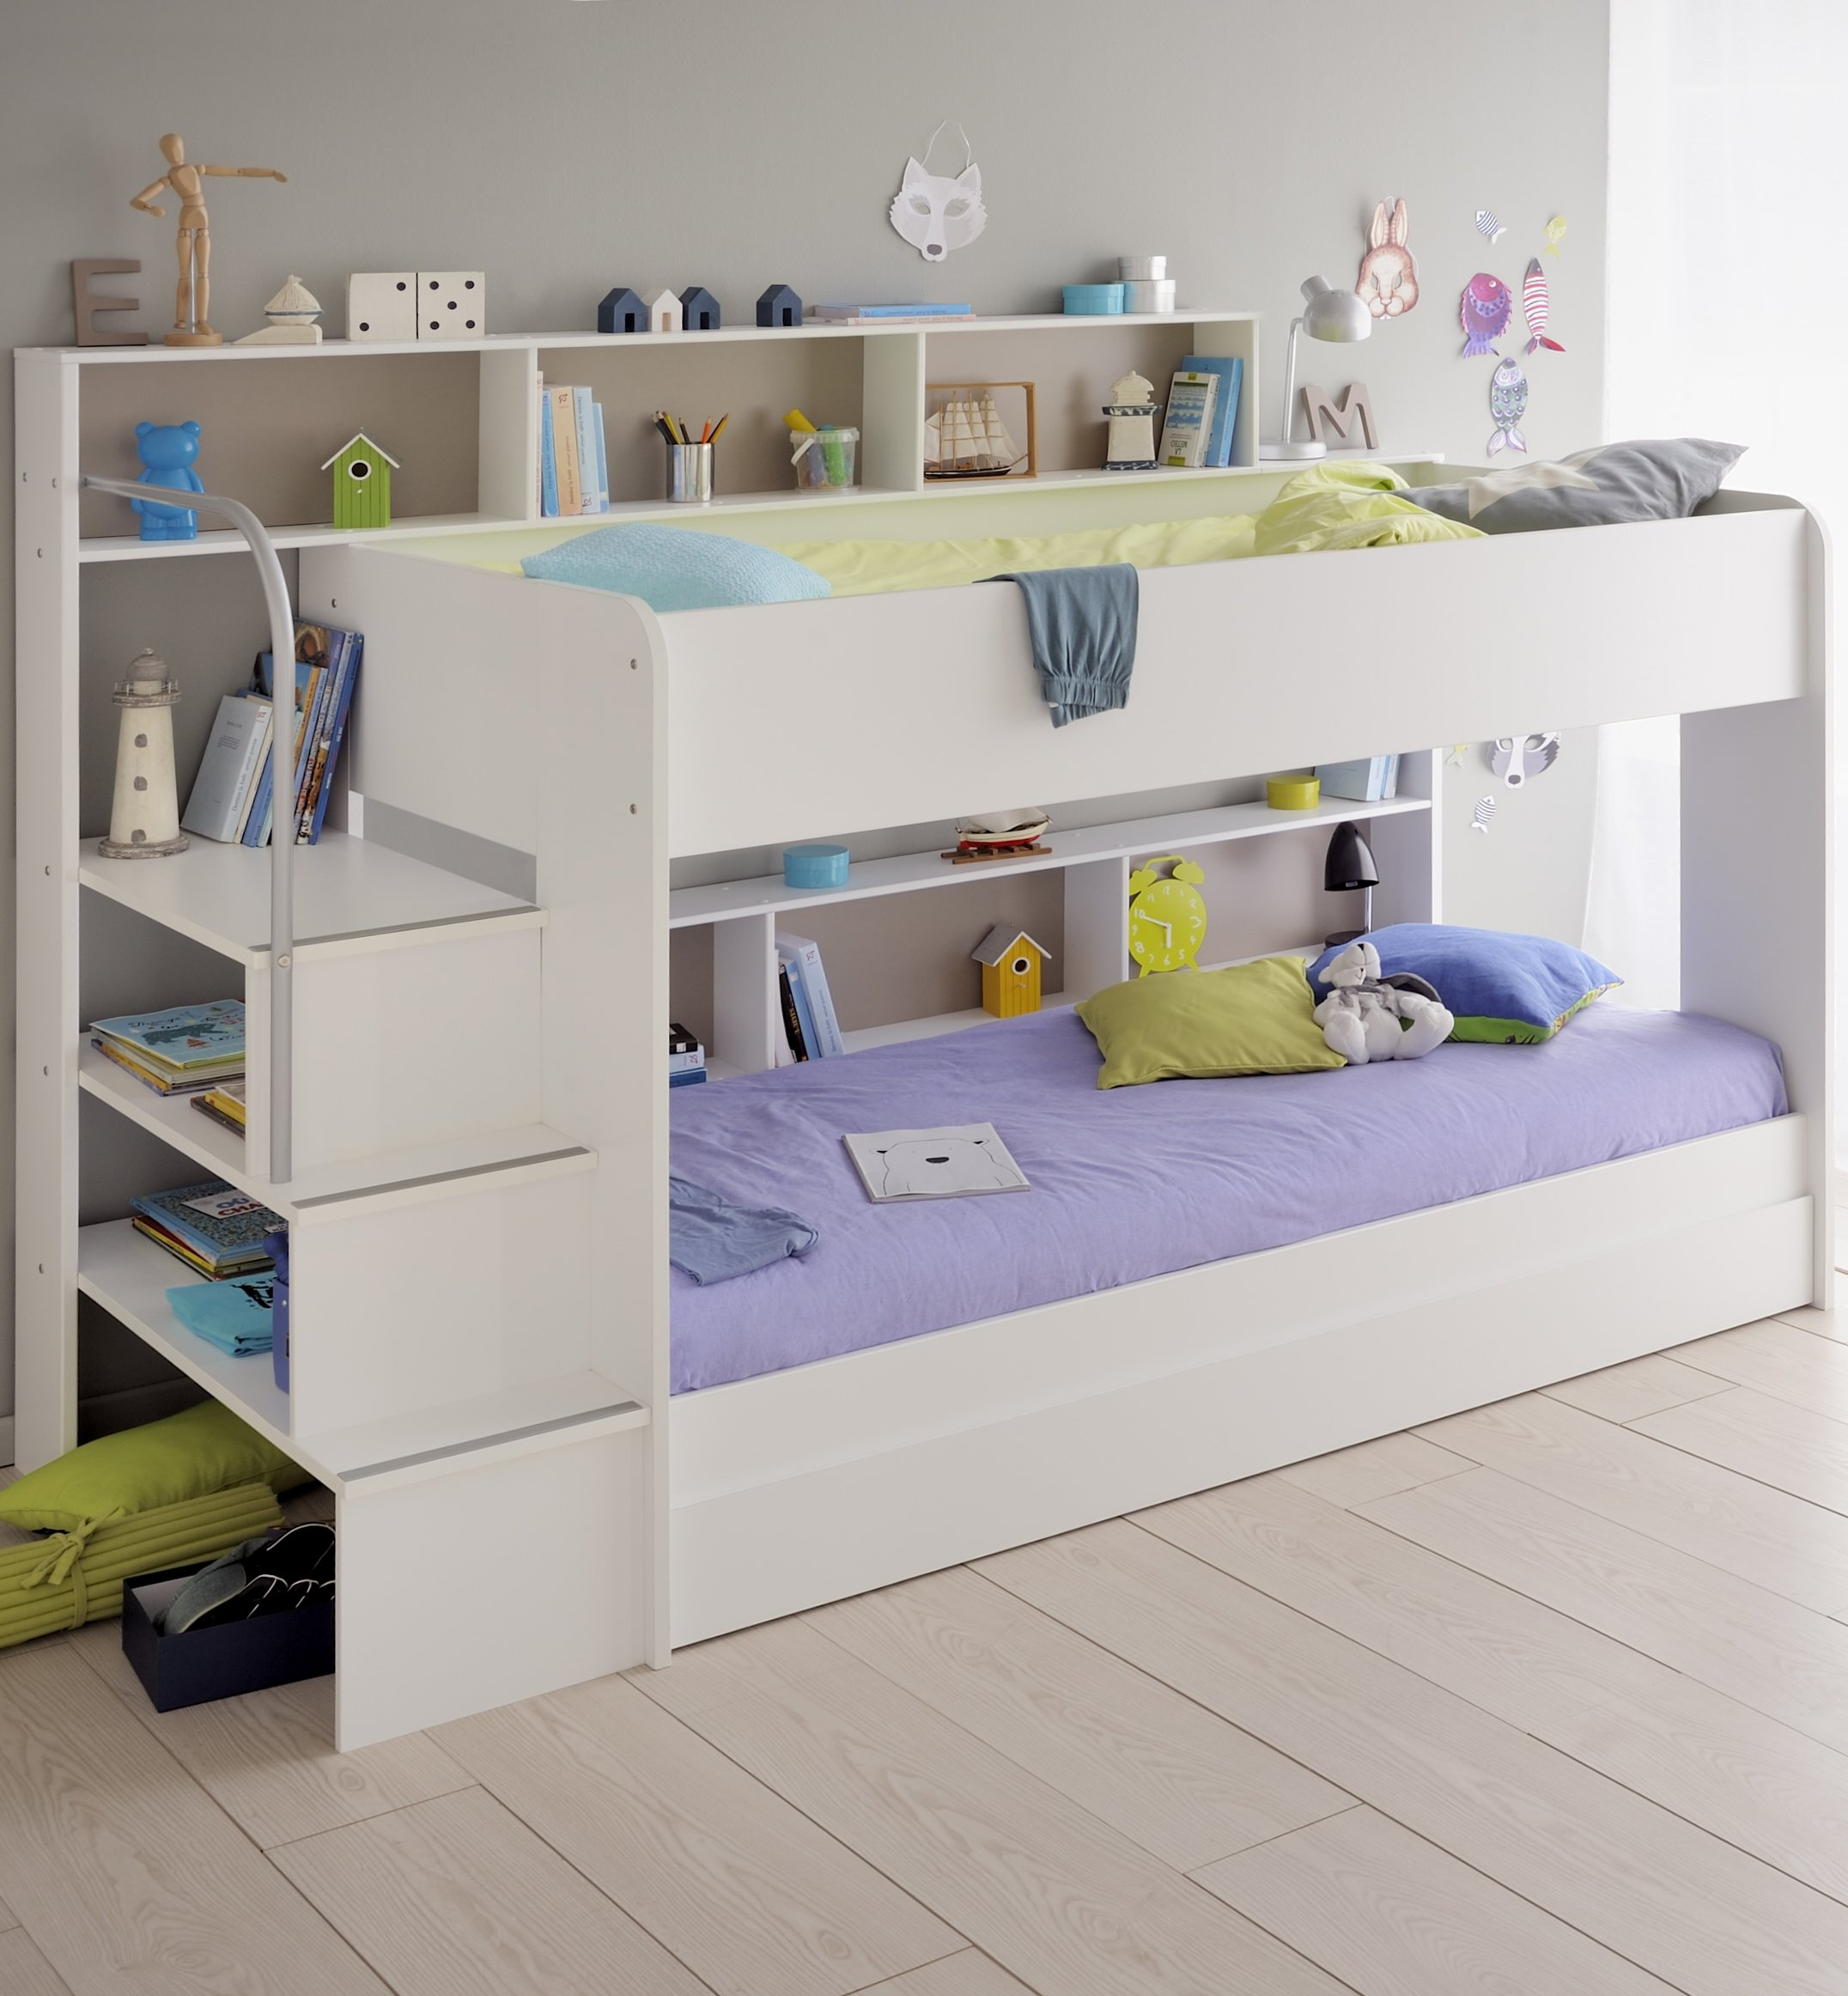 Boy and Girl Bunk Beds with Storage 2152 x 2324